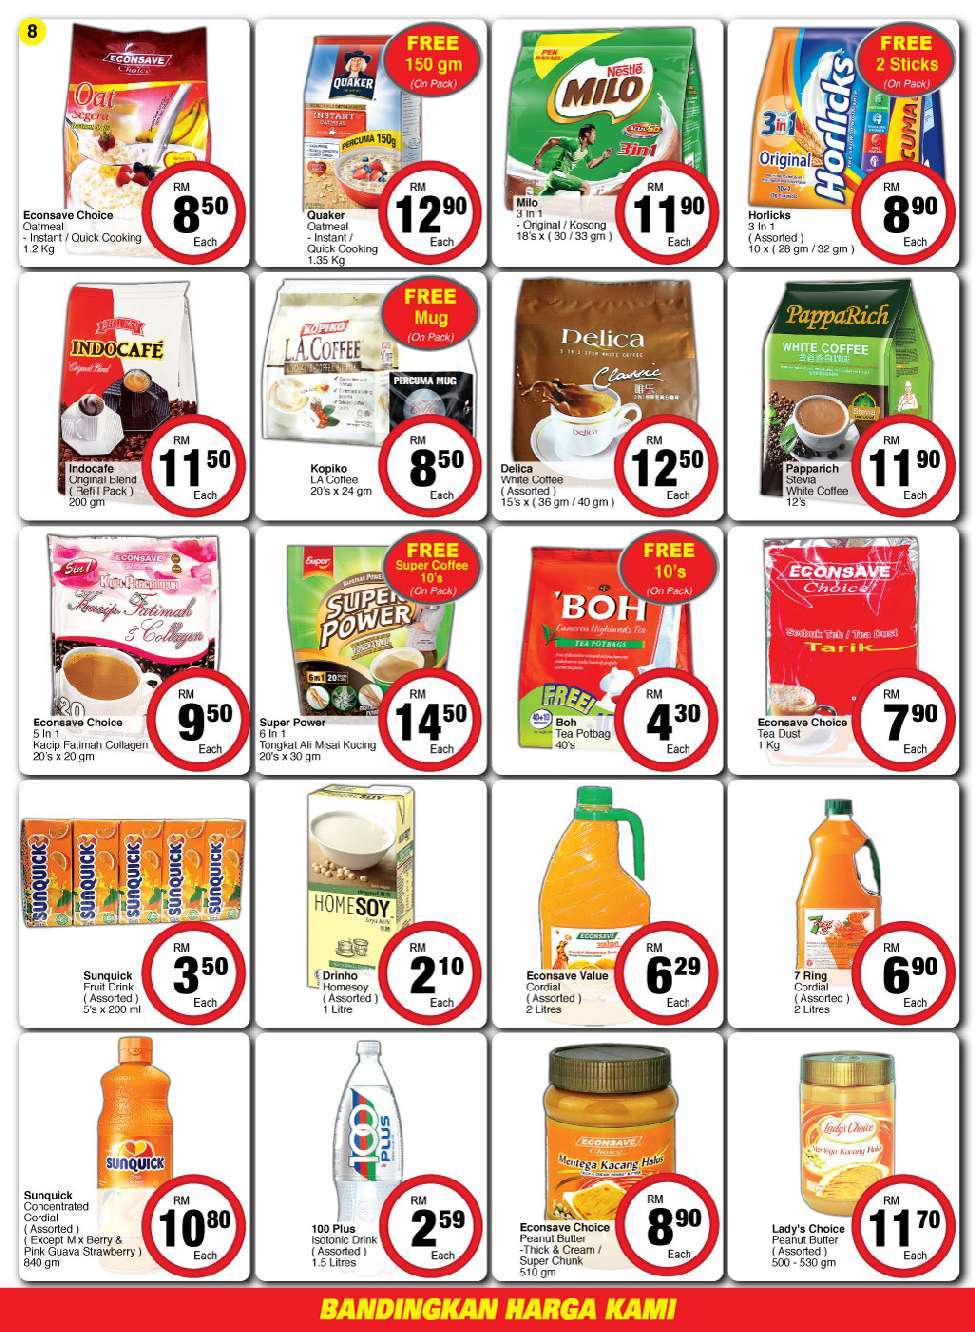 EconSave Catalogue (25 August 2017 - 5 September 2017)